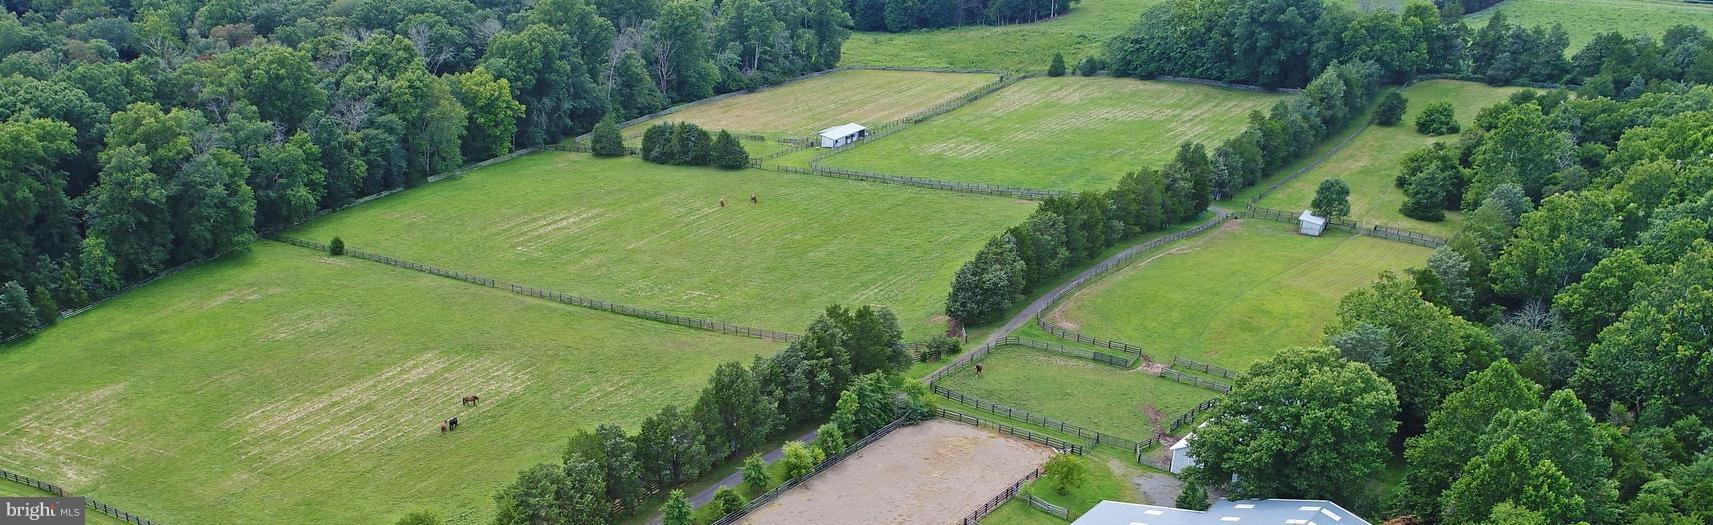 12138 MARBLE HILL LANE, CATHARPIN, VA 20143